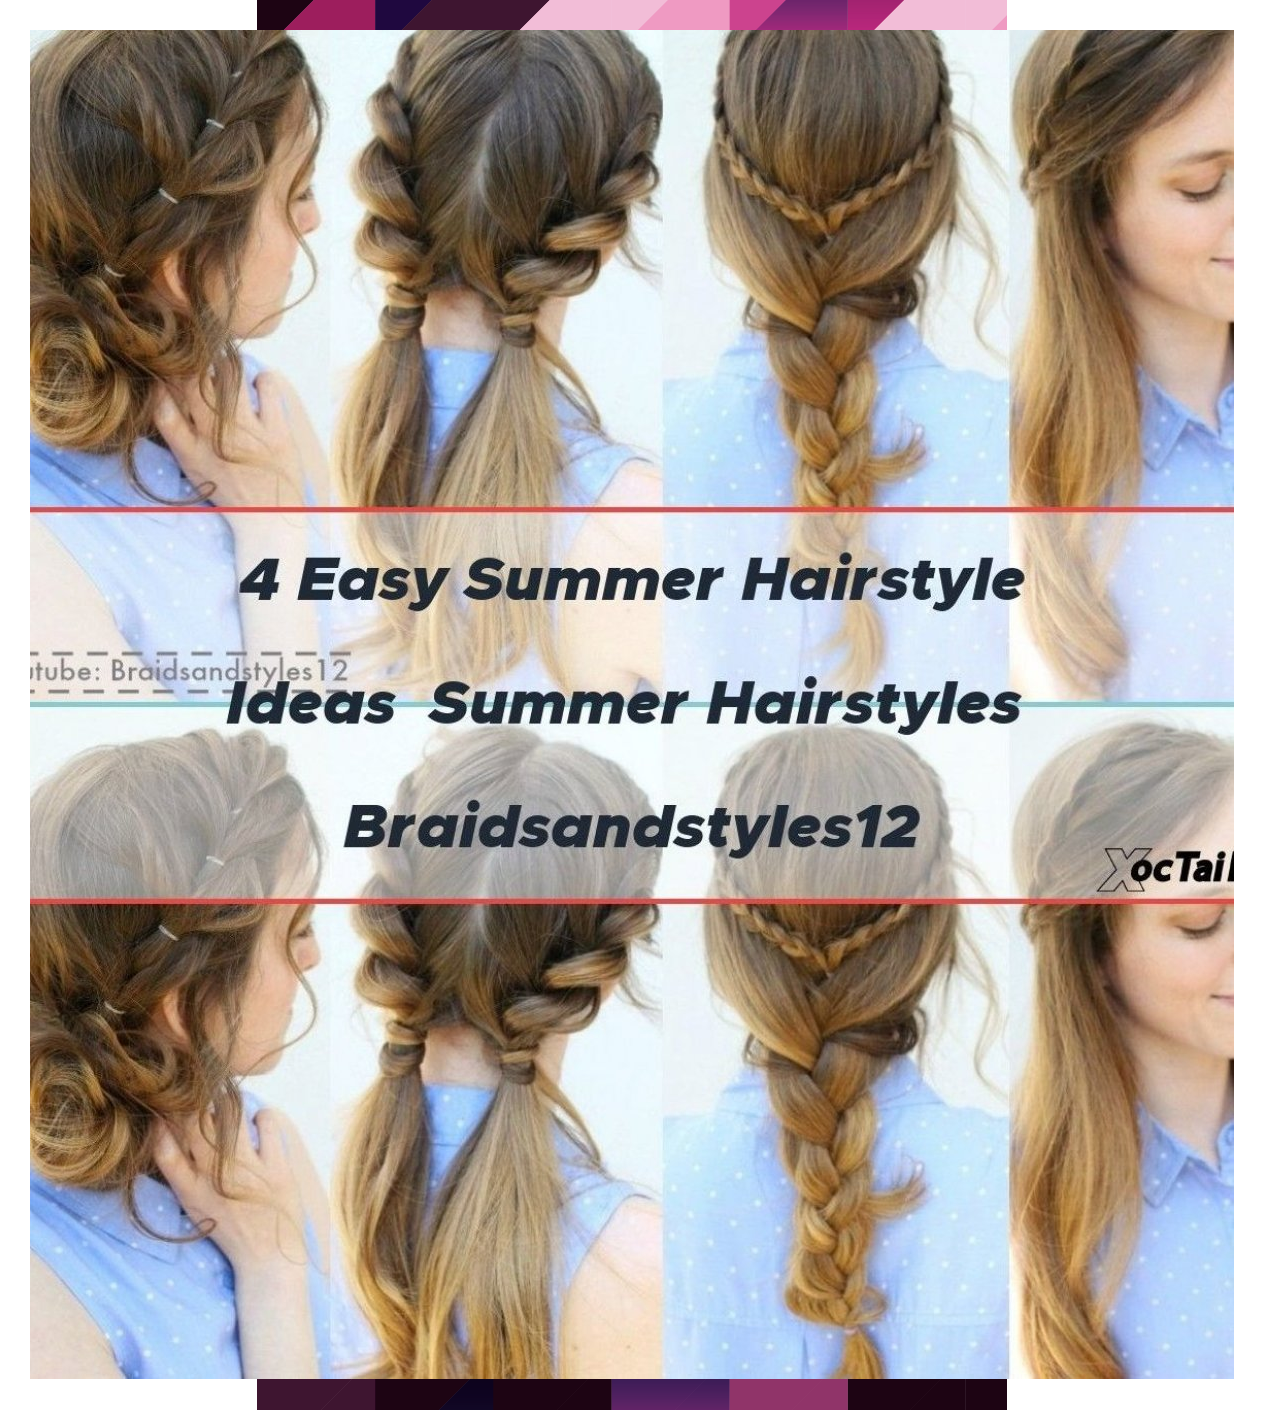 4 Easy Summer Hairstyle Ideas Summer Hairstyles Easy Hairstyle Hairstyles Ideas Summer In 2020 Easy Summer Hairstyles Summer Hairstyles Hair Styles